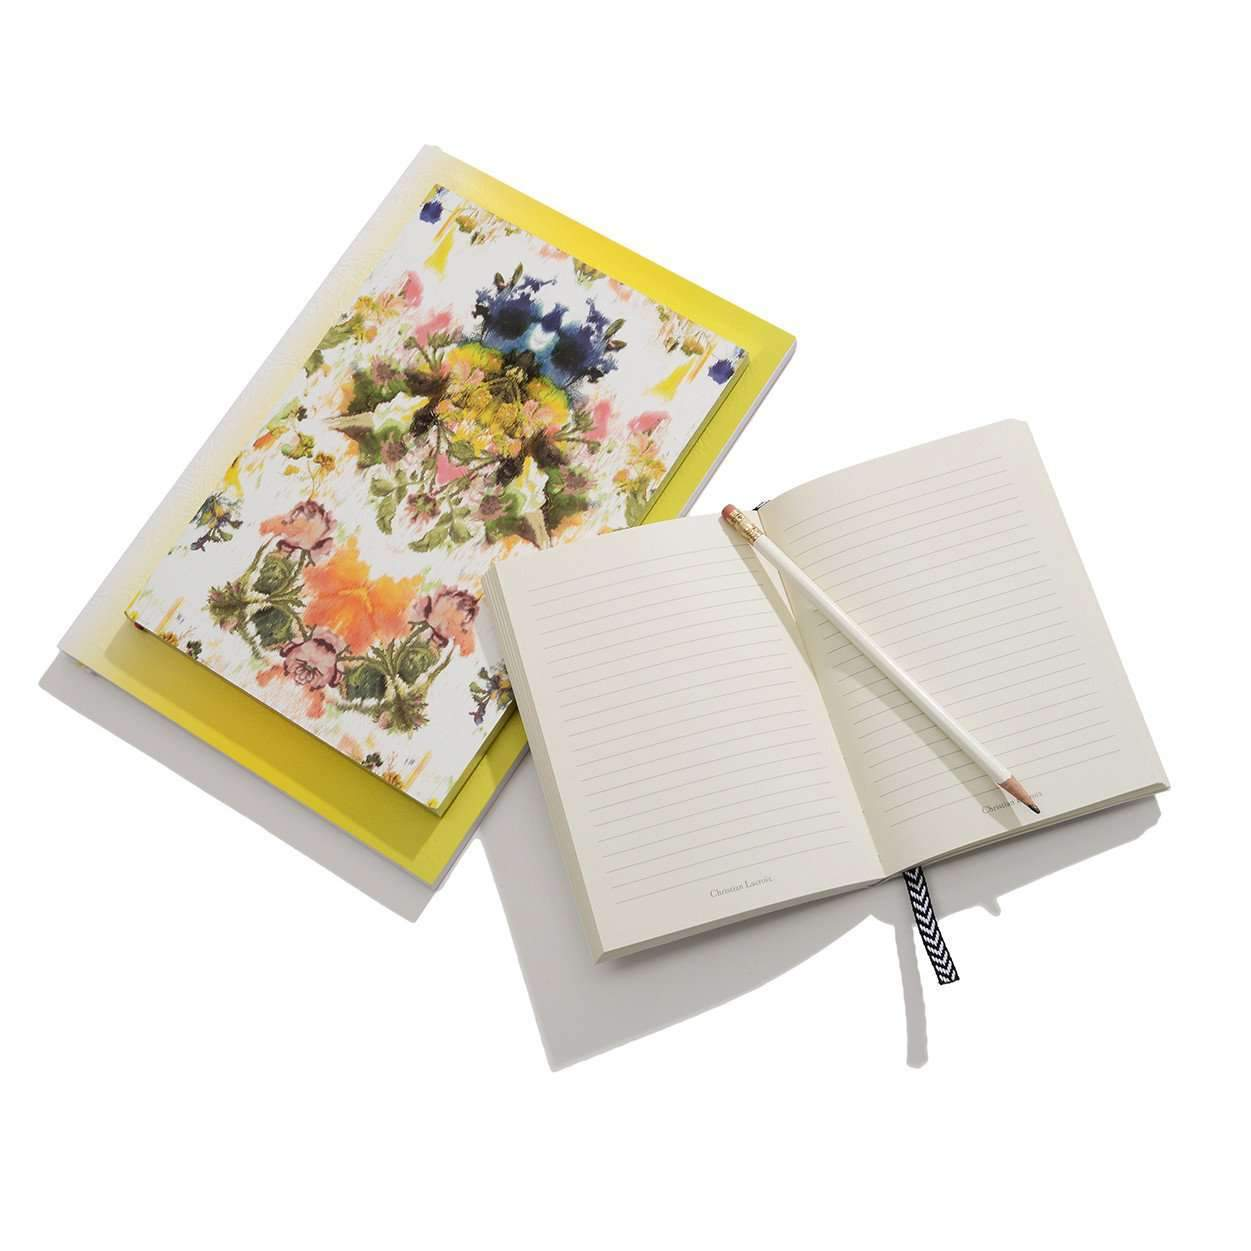 Ps'ikat Softcover Notebook Christian Lacroix Notebooks and Journals Christian Lacroix